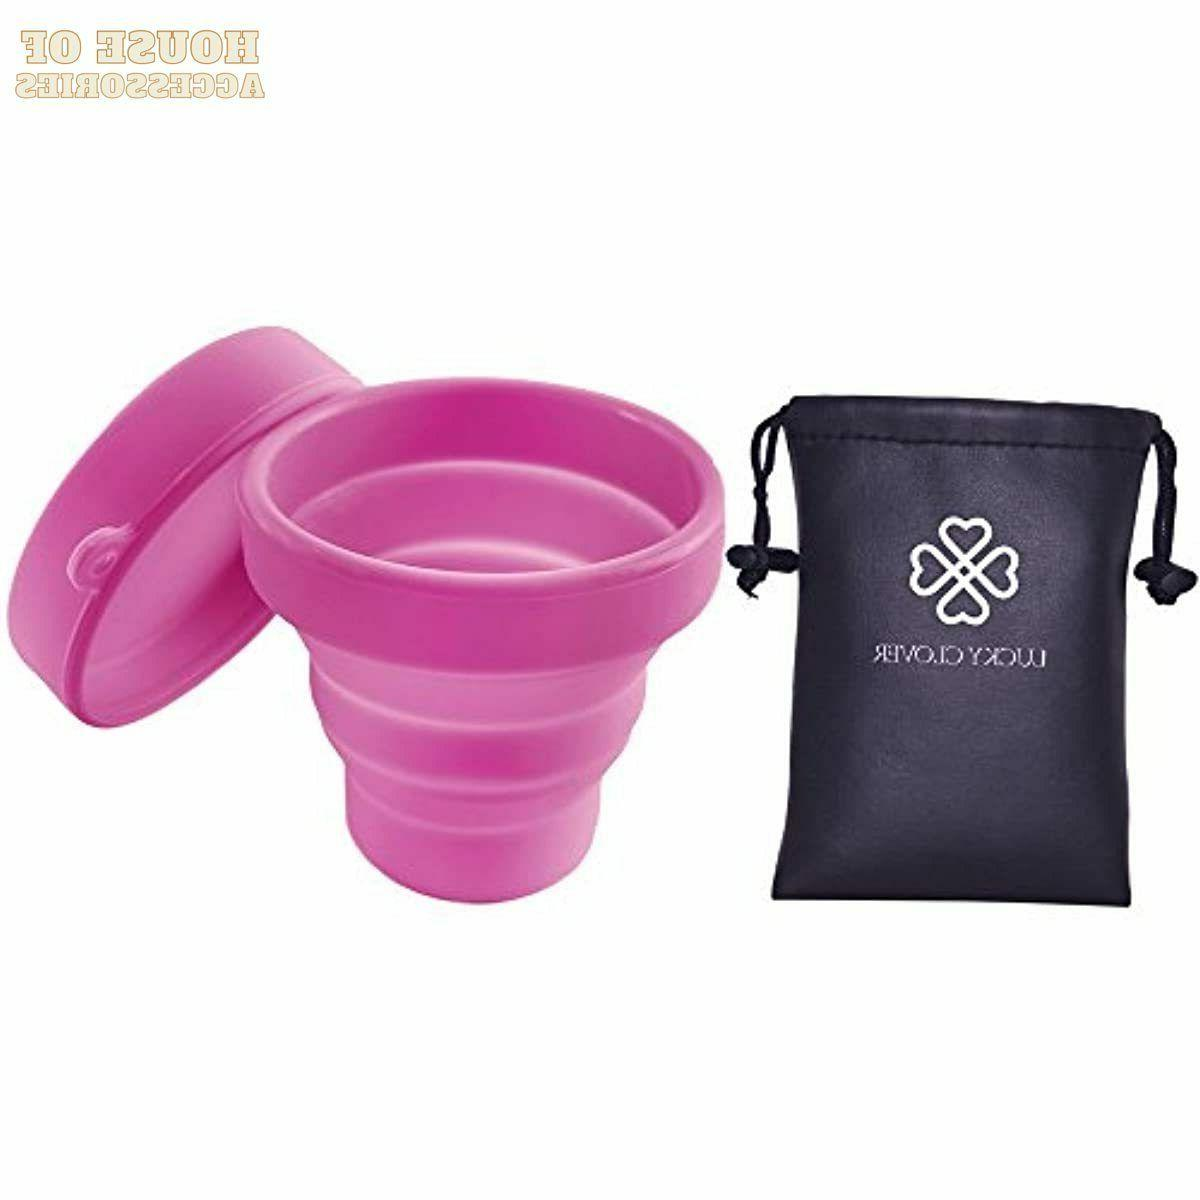 Collapsible Foldable Cup set softcups